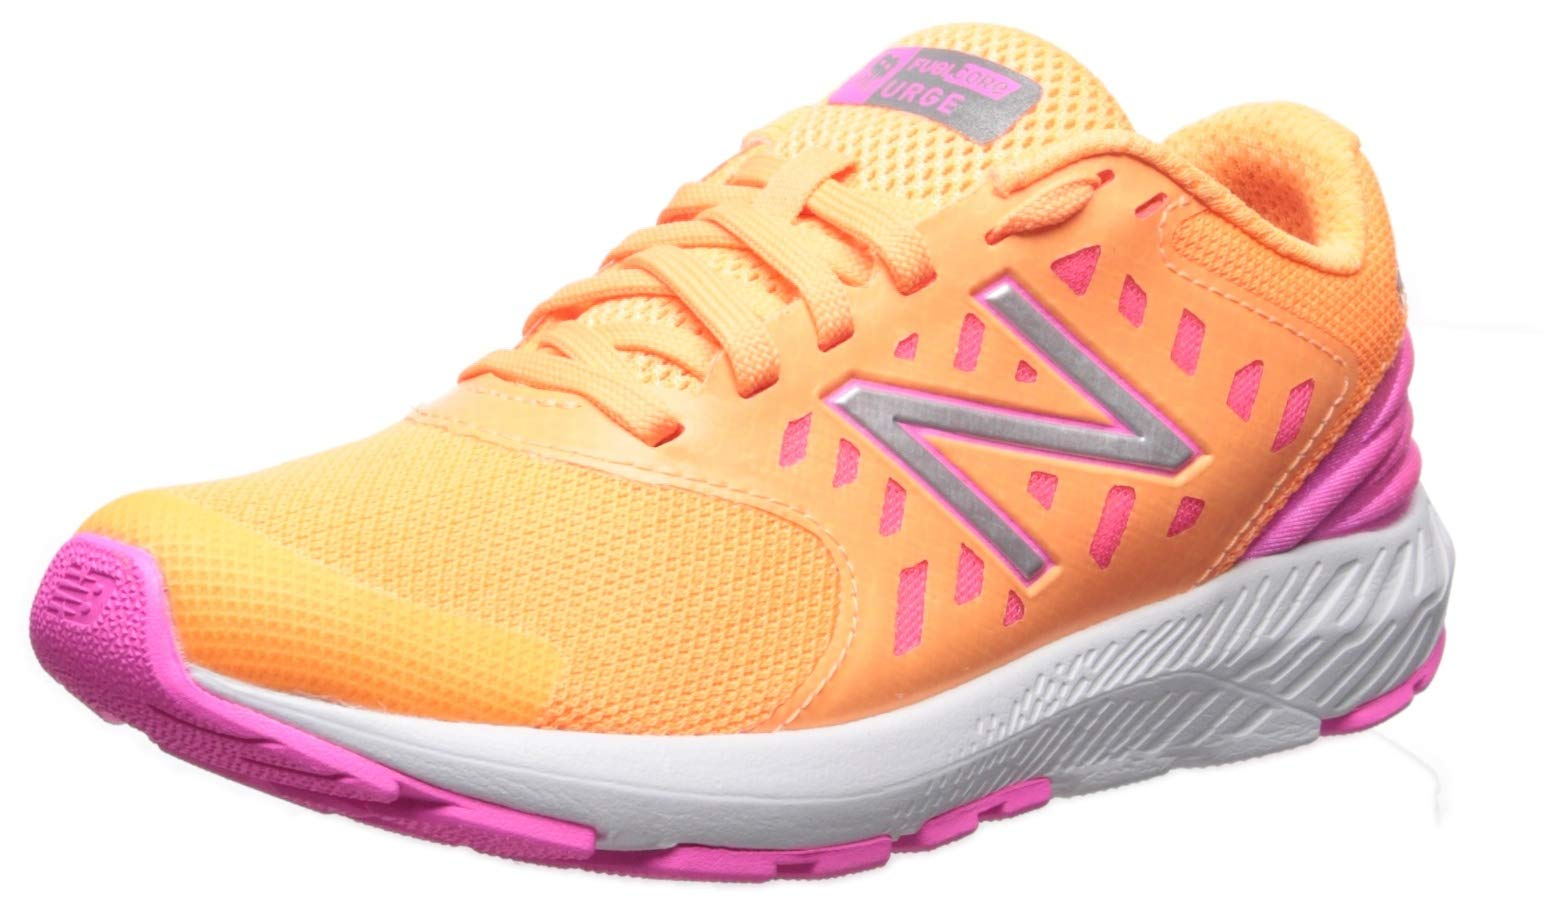 New Balance Girls' Urge V2 FuelCore Running Shoe, mango/light peony, 6 W US Big Kid by New Balance